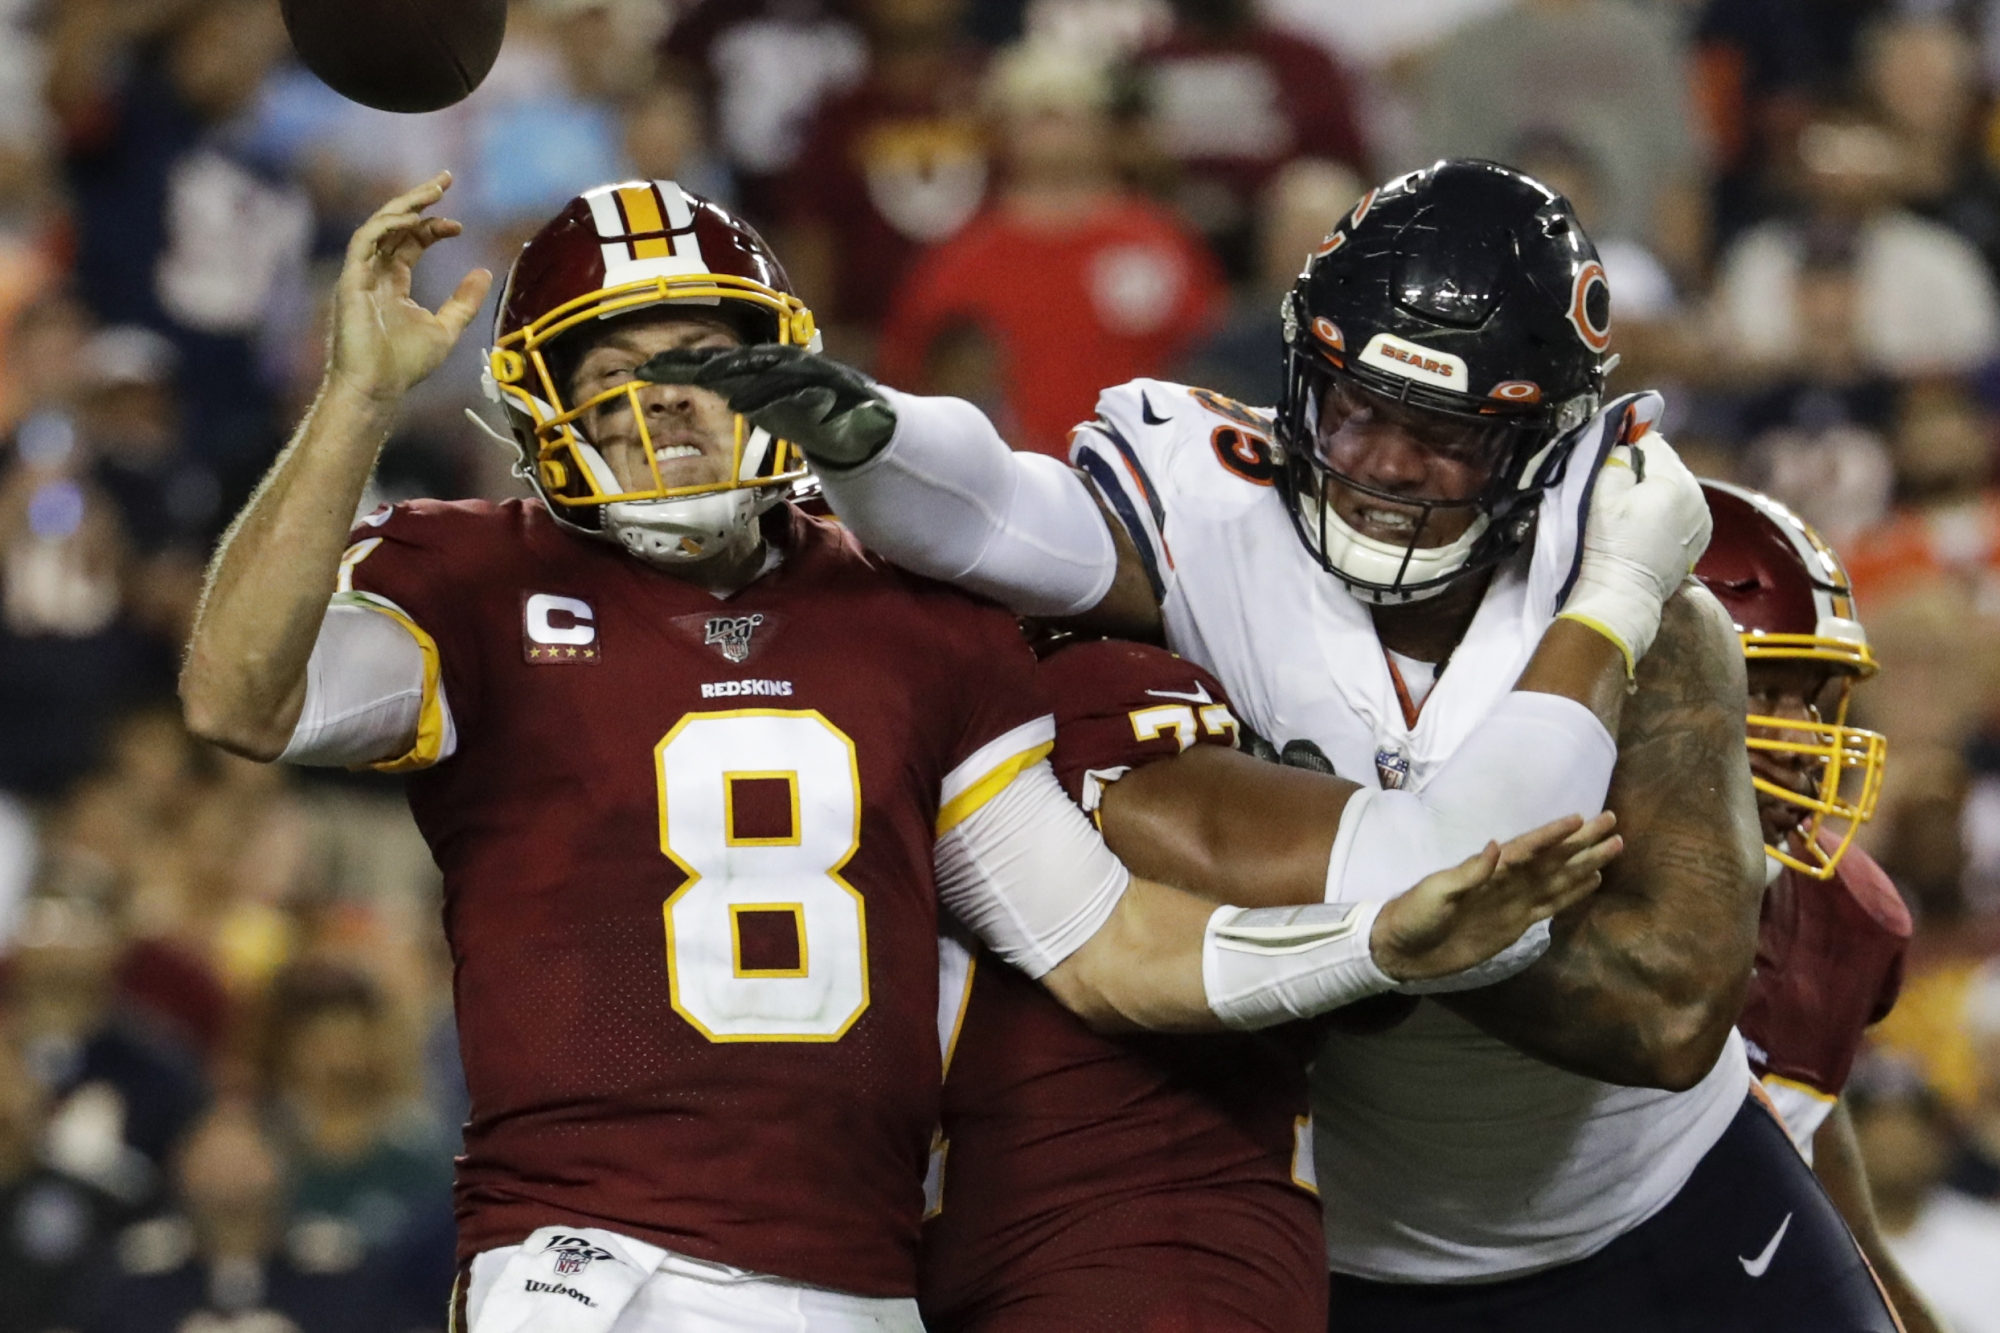 timeless design c5f47 d34c5 Redskins keep finding different ways to lose | WTOP